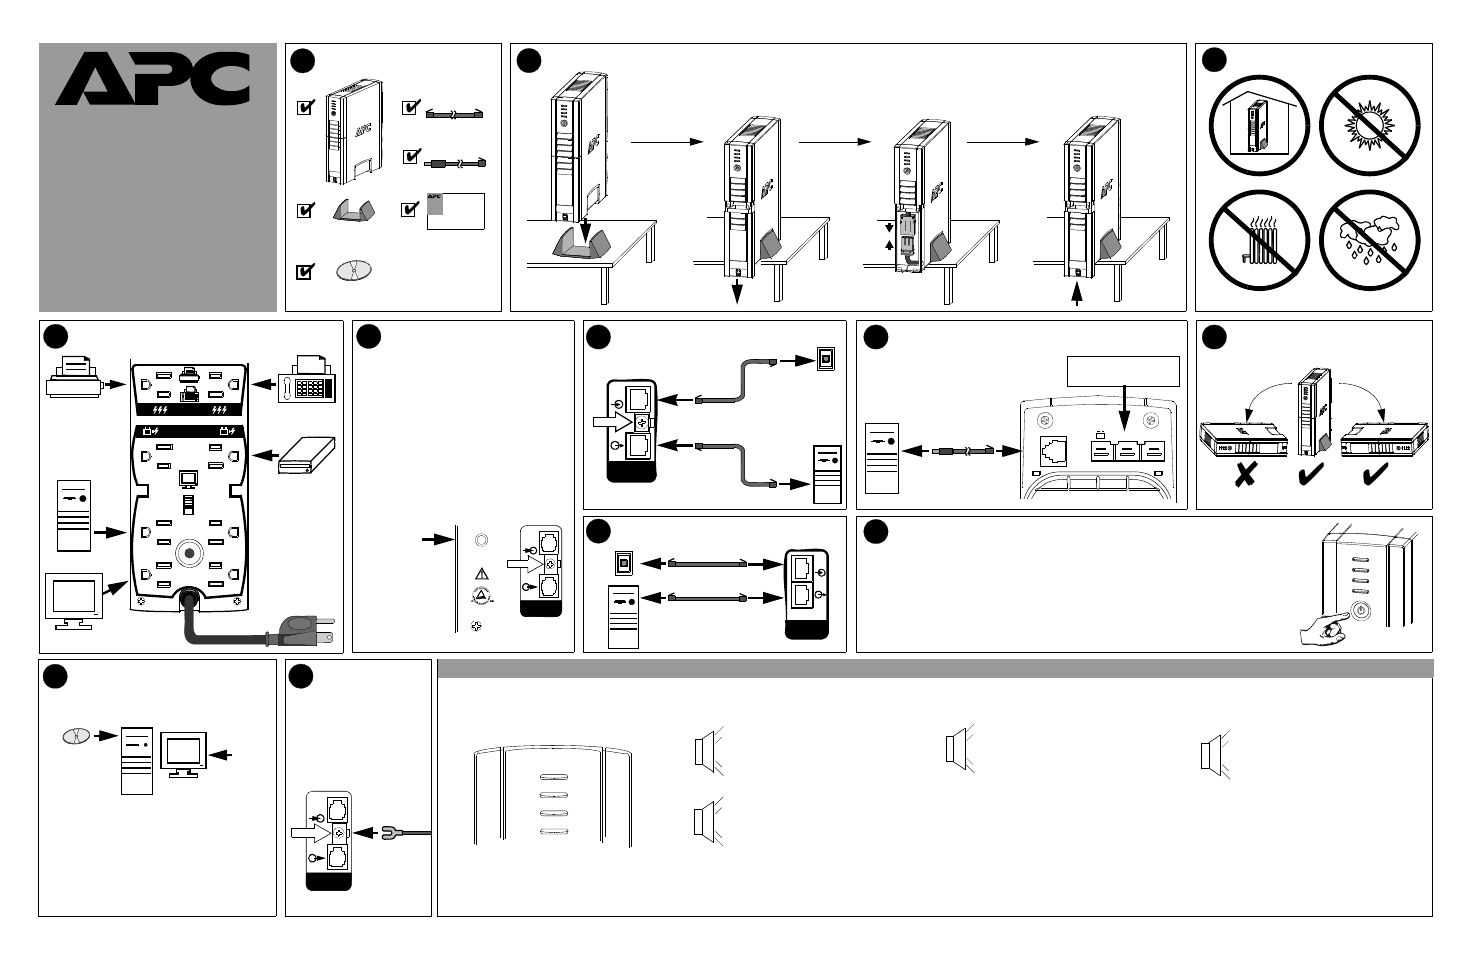 hight resolution of apc 1500 battery wiring diagram